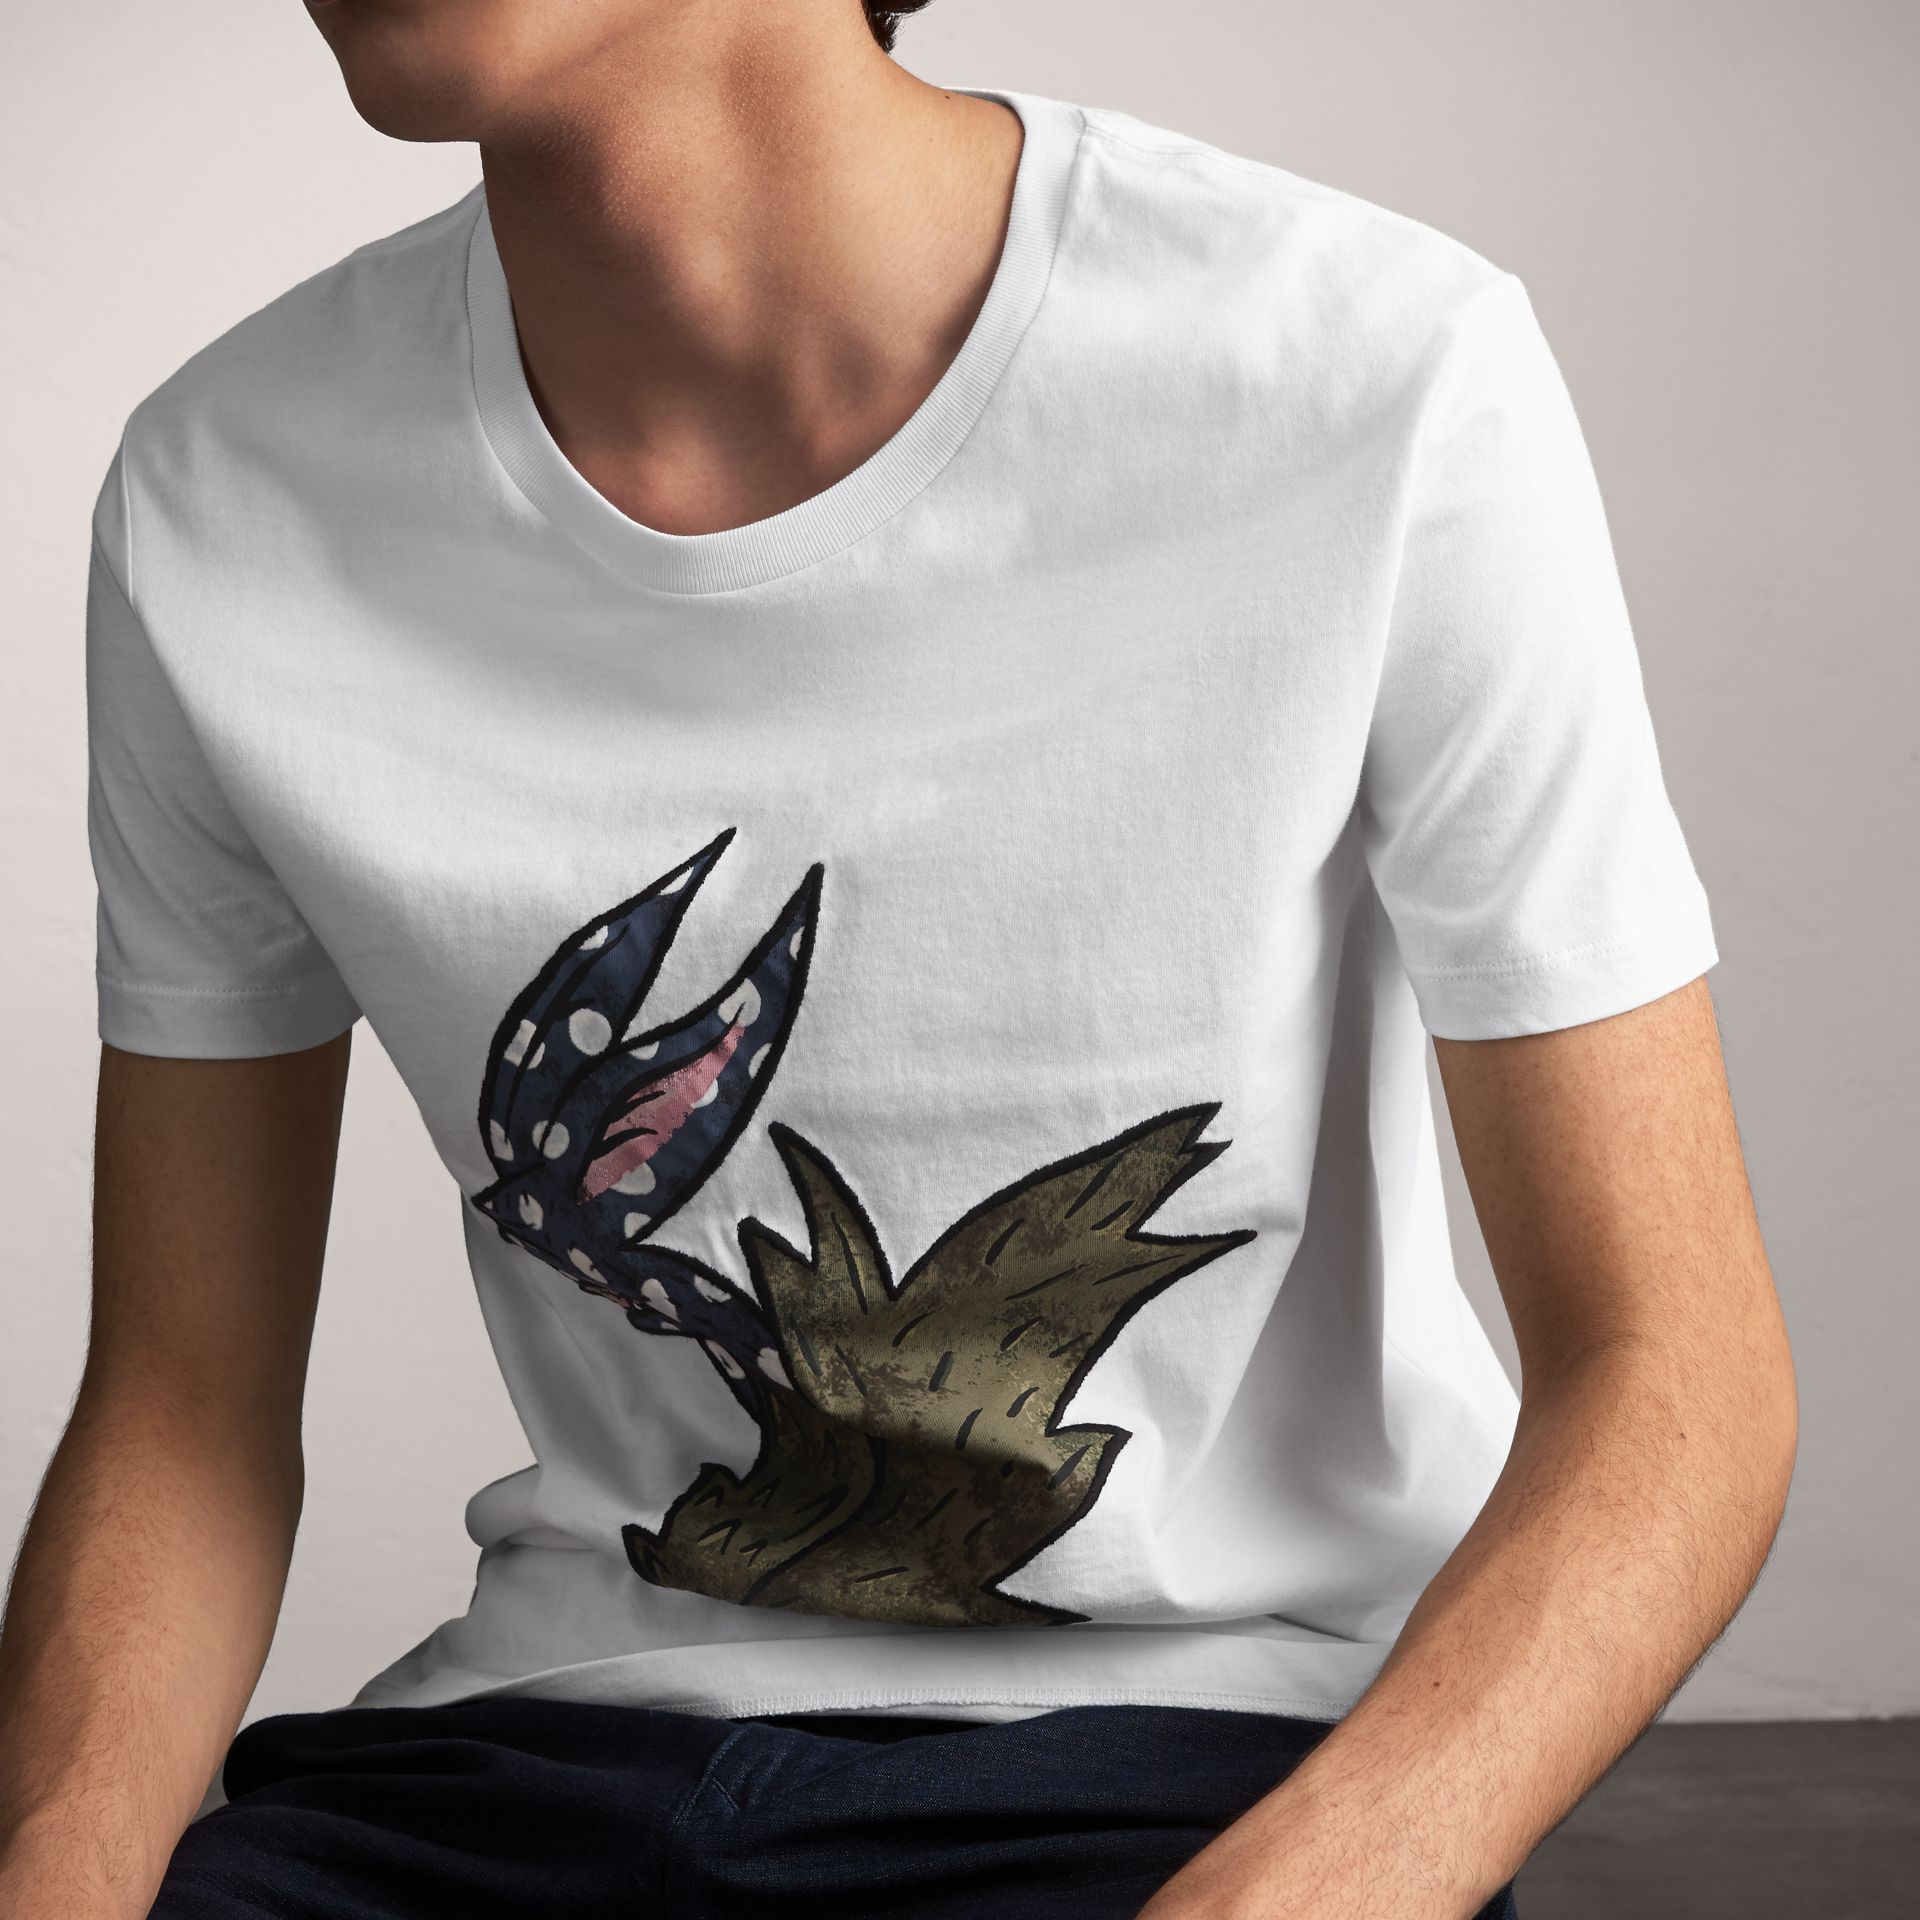 Flocked and Embroidered Beasts Print Cotton T-shirt in White - Men | Burberry - gallery image 4